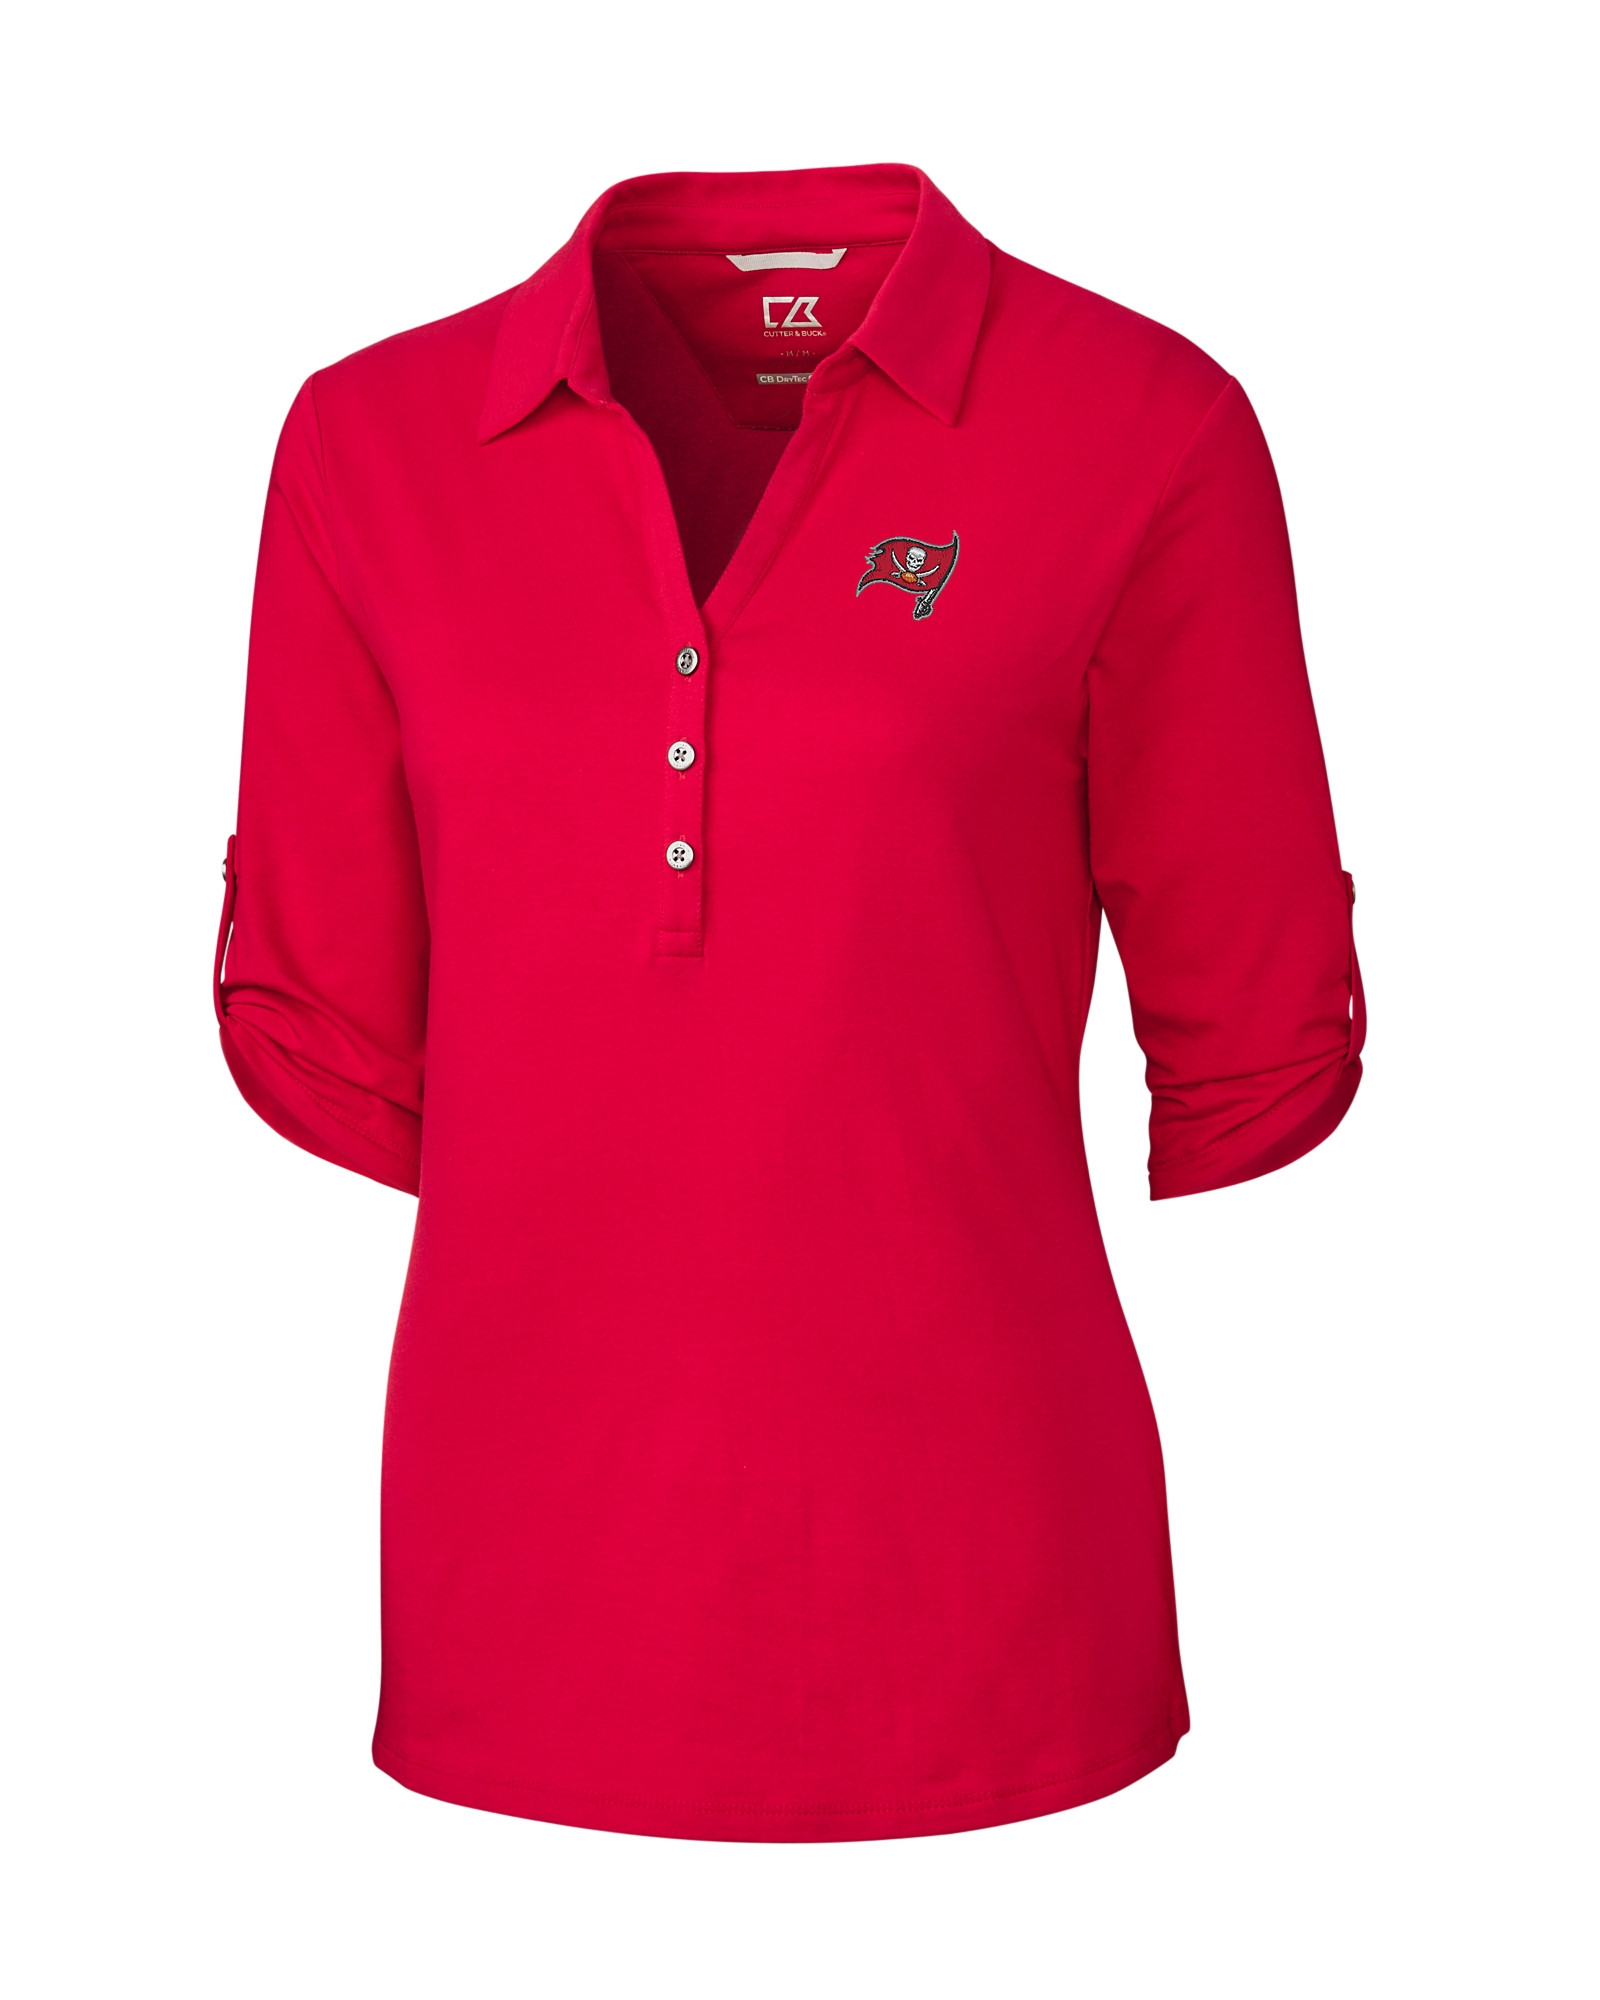 f4f3d335 Tampa Bay Buccaneers Ladies' Thrive Polo - Cutter & Buck